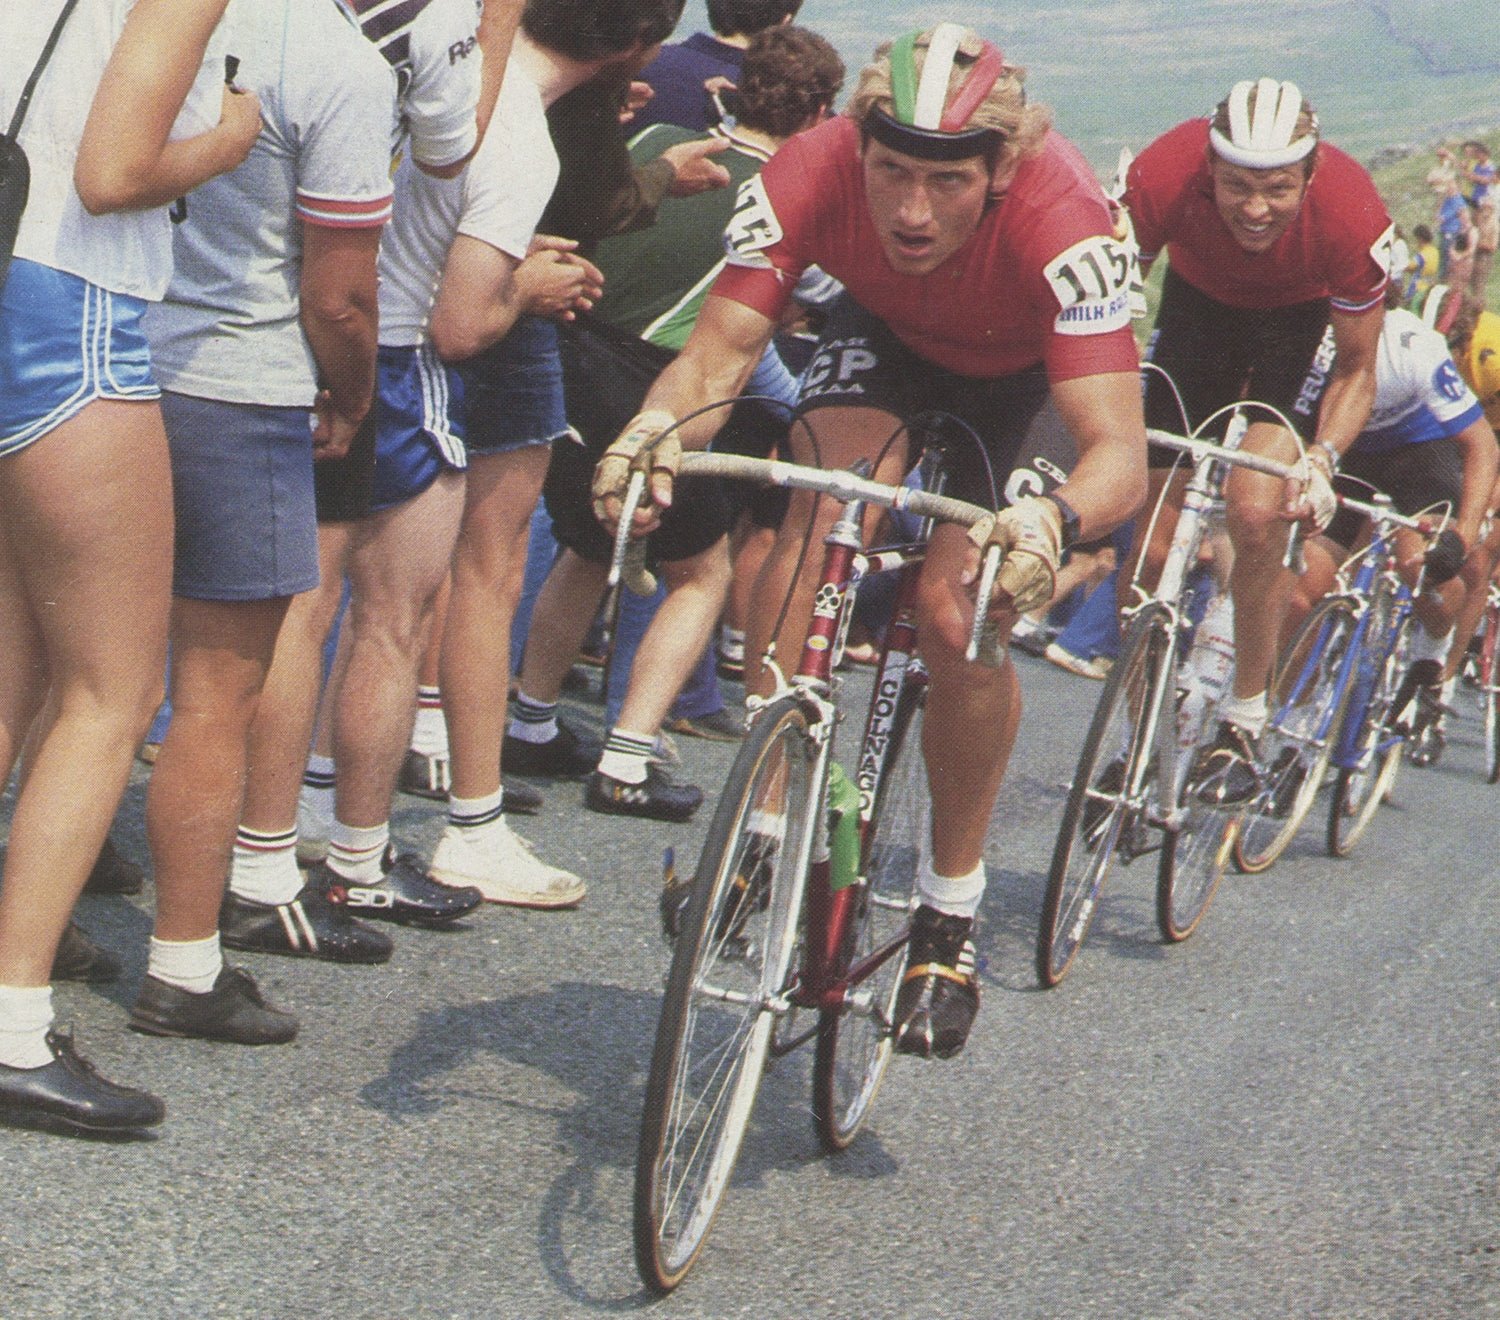 Milk Race, 1983.  A rather common sight in the 1980s was that of the USSR cycling team on the front of the bunch aboard their colour coordinated Colnago bicycles.